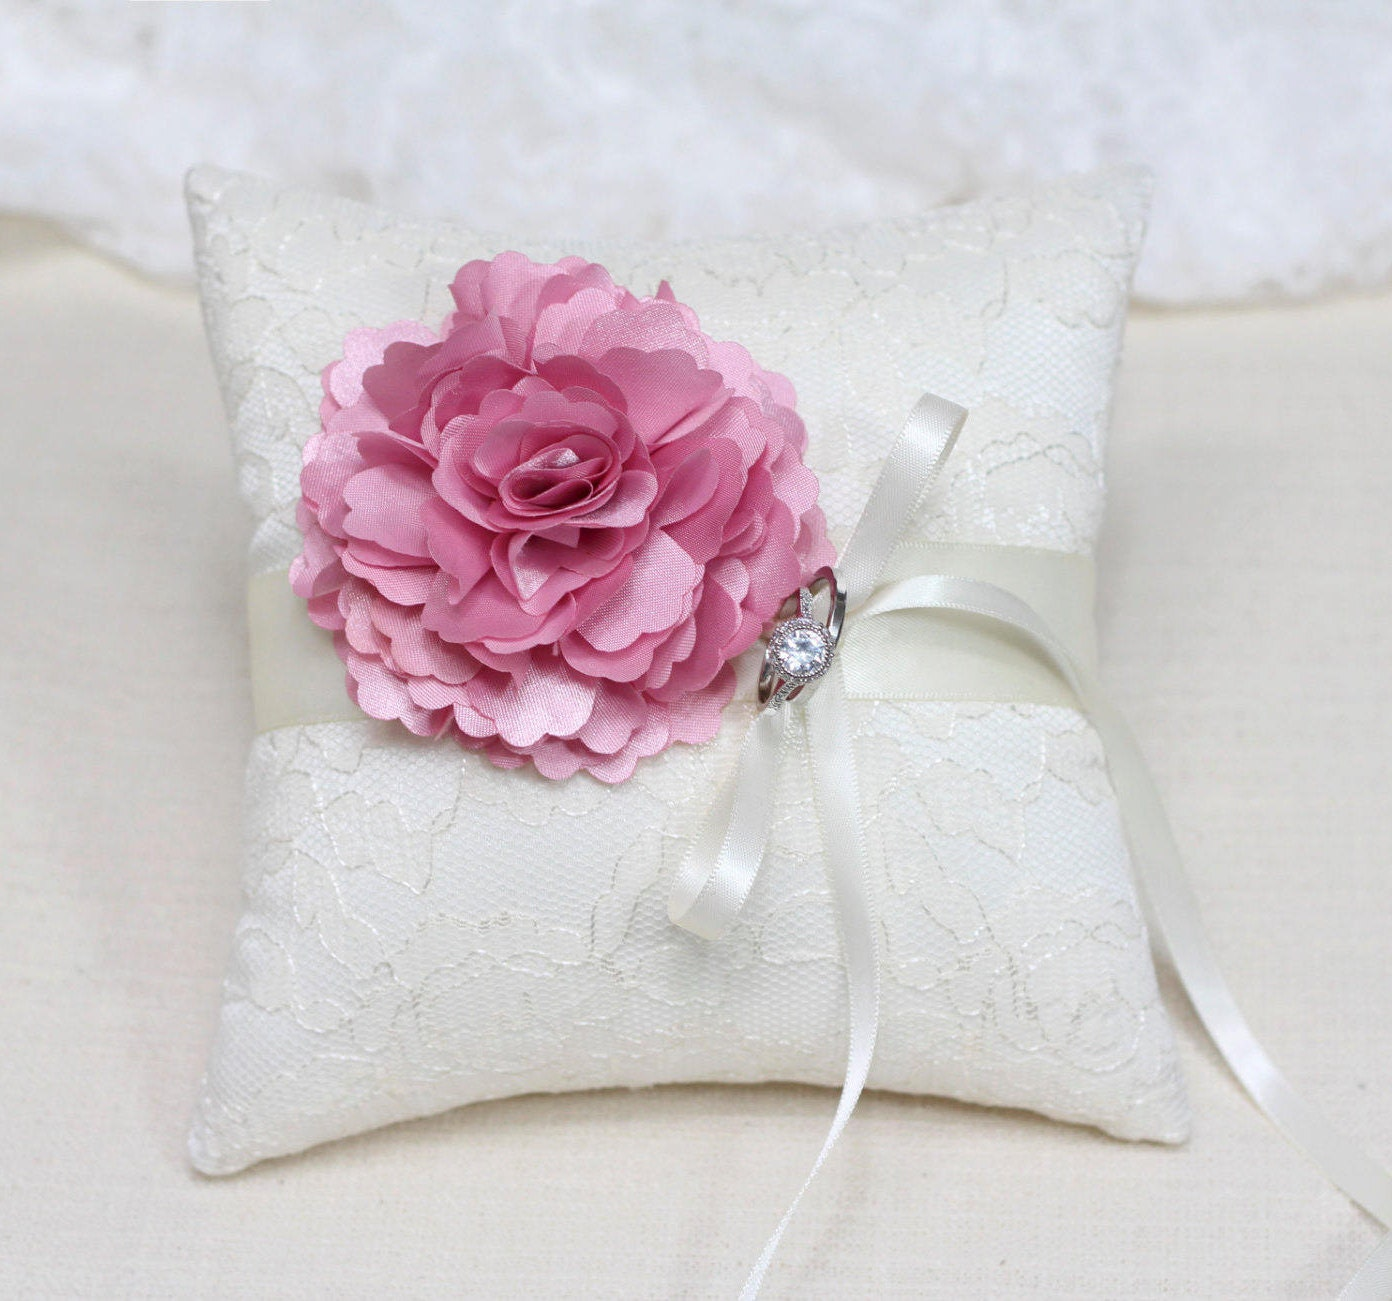 Wedding ring bearer pillow pink flower on ivory lace ring | Etsy